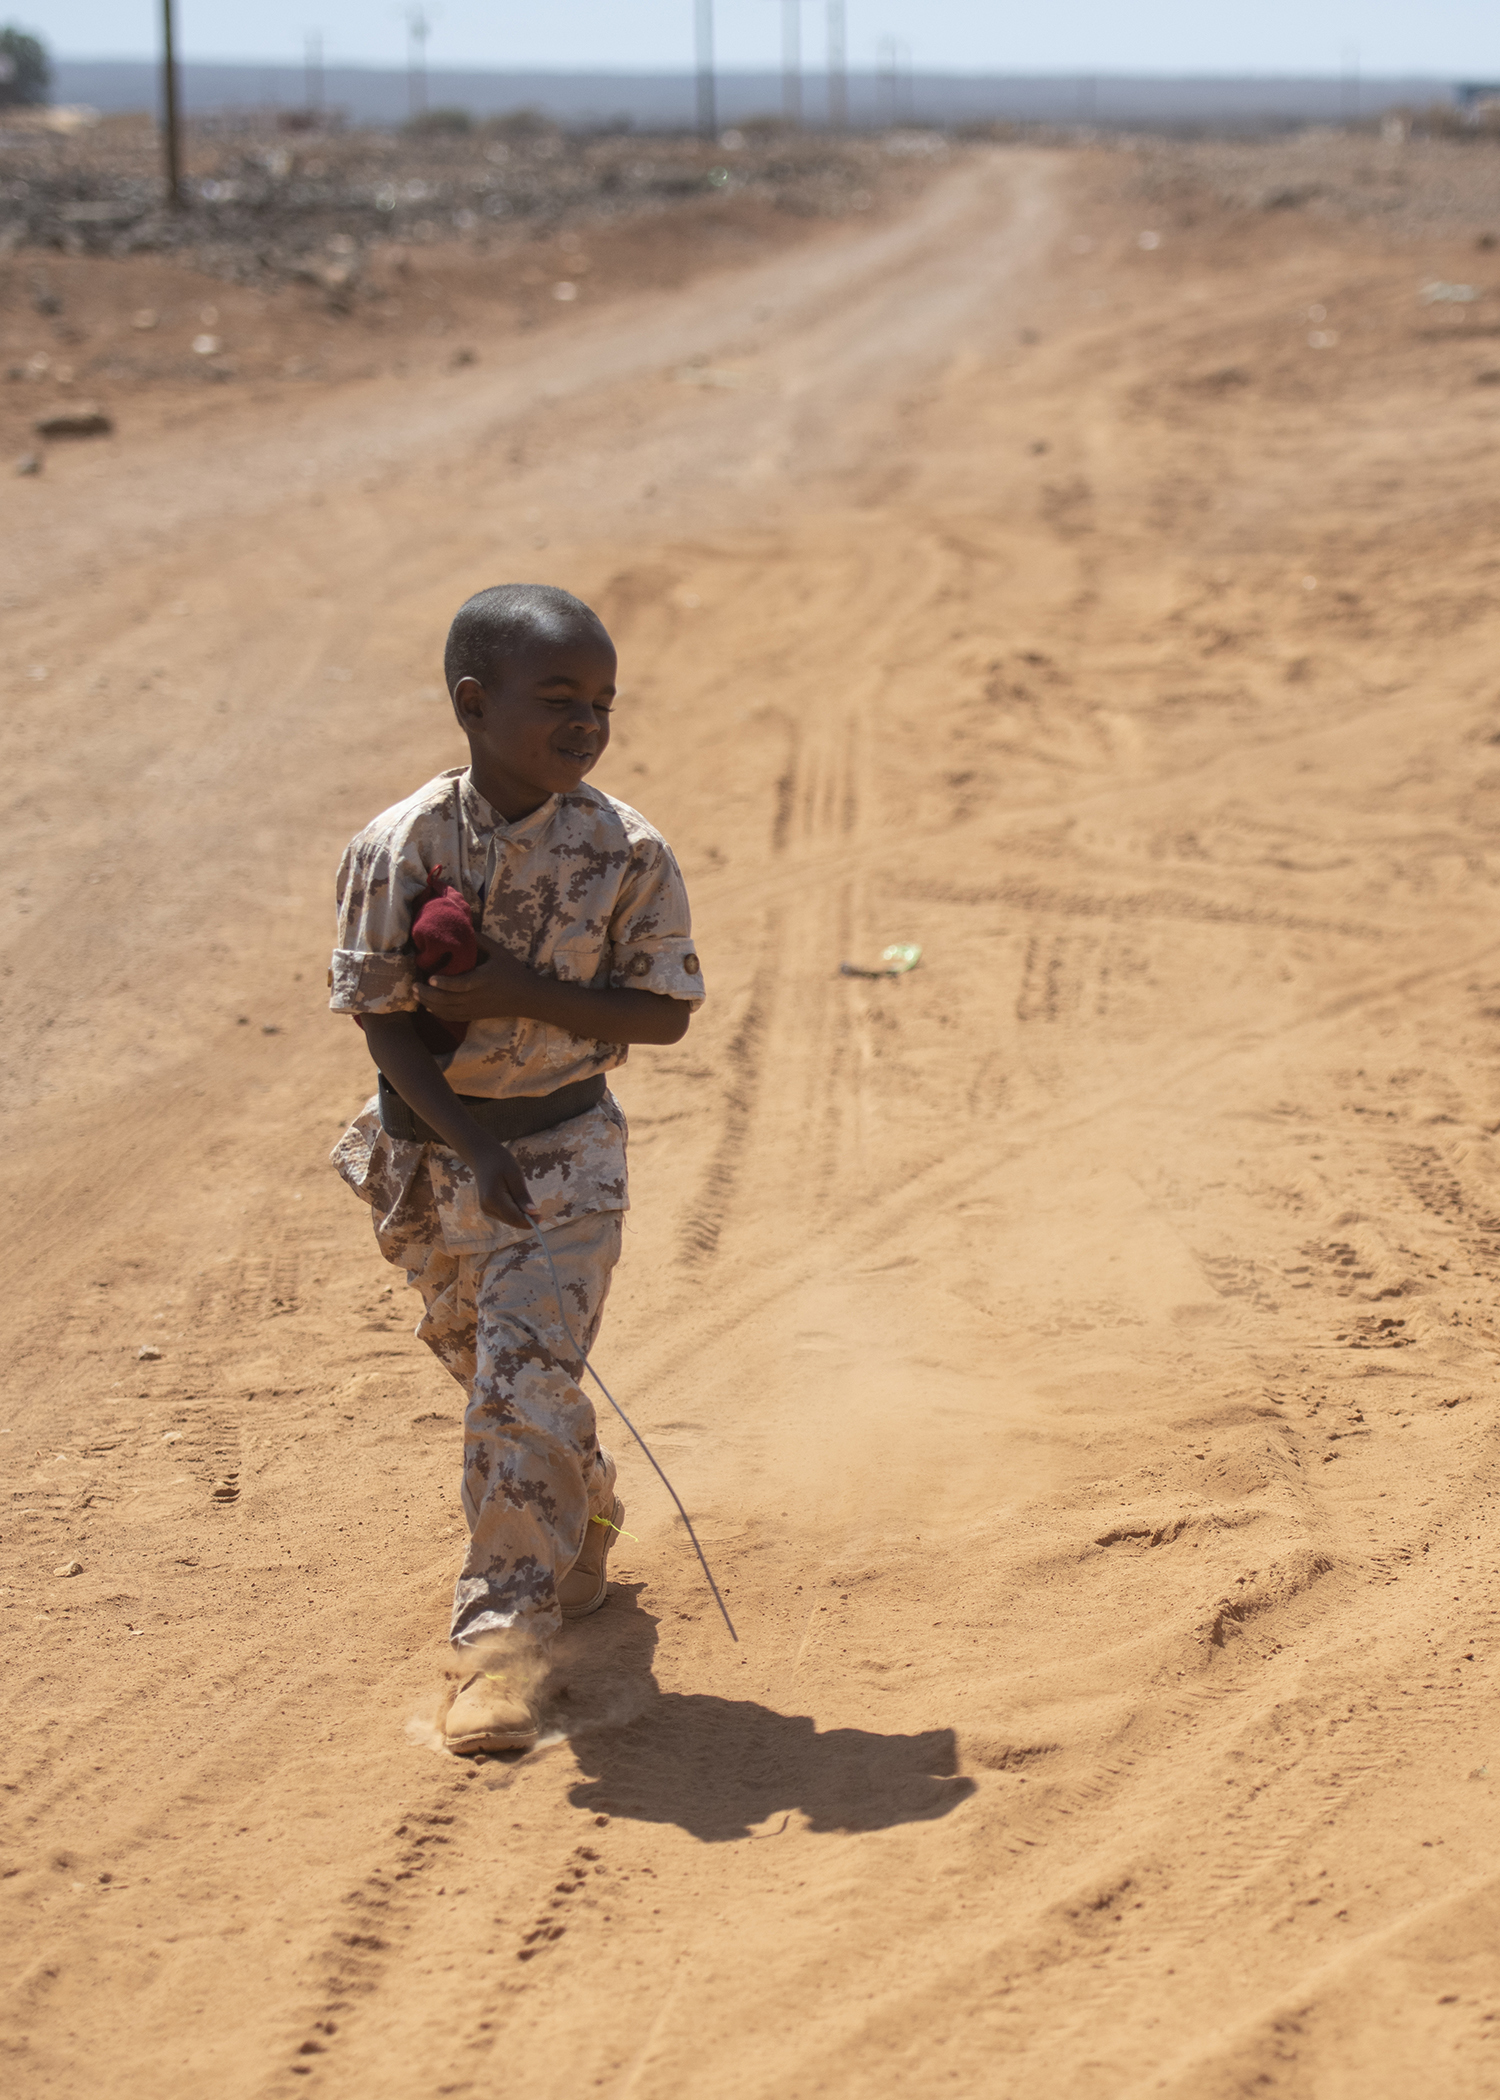 A Djiboutian youth dressed in military-style uniform plays along the road during the Ali Oune Medical Clinic ribbon cutting ceremony in Ali Oune, Djibouti, Jan. 31, 2019. The clinic, which salutes a U.S. Navy Seabee, from Naval Mobile Construction Battalion 1, have been working to complete for five months, is intended to enhance the Ministry of Health for Djibouti's ability to provide basic medical, birth and after care to the Ali Oune village and its more than 1,000 residents and rural neighbors. (U.S. Air Force photo by Tech. Sgt. Shawn Nickel)